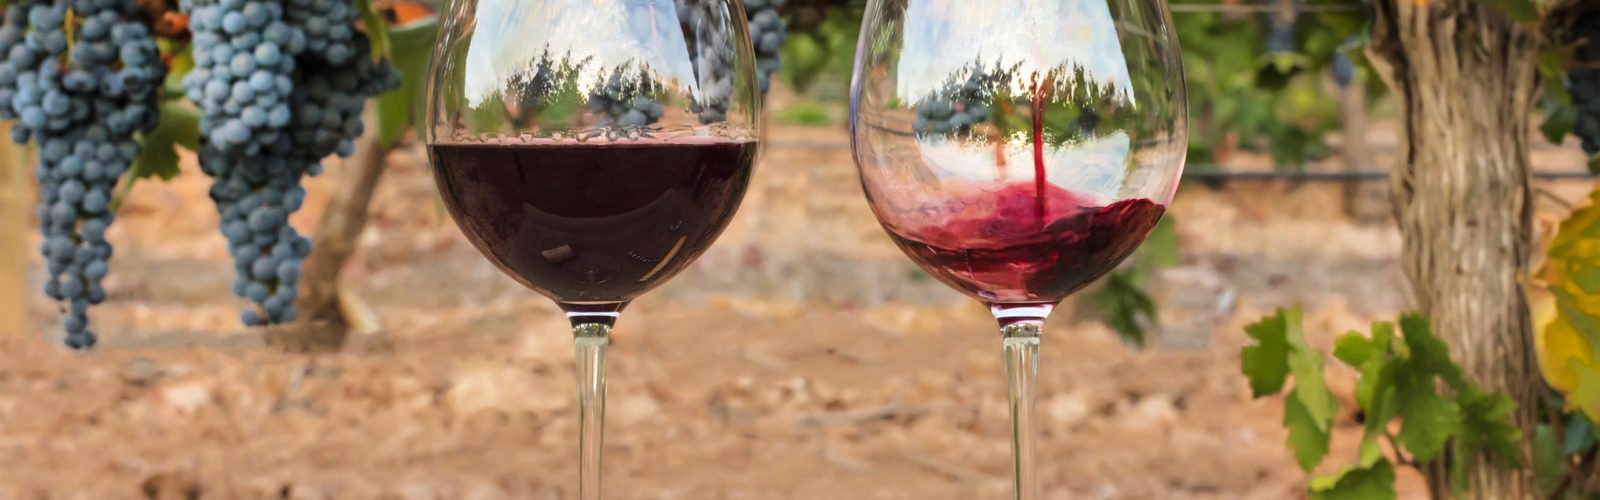 spain-wine-pouring